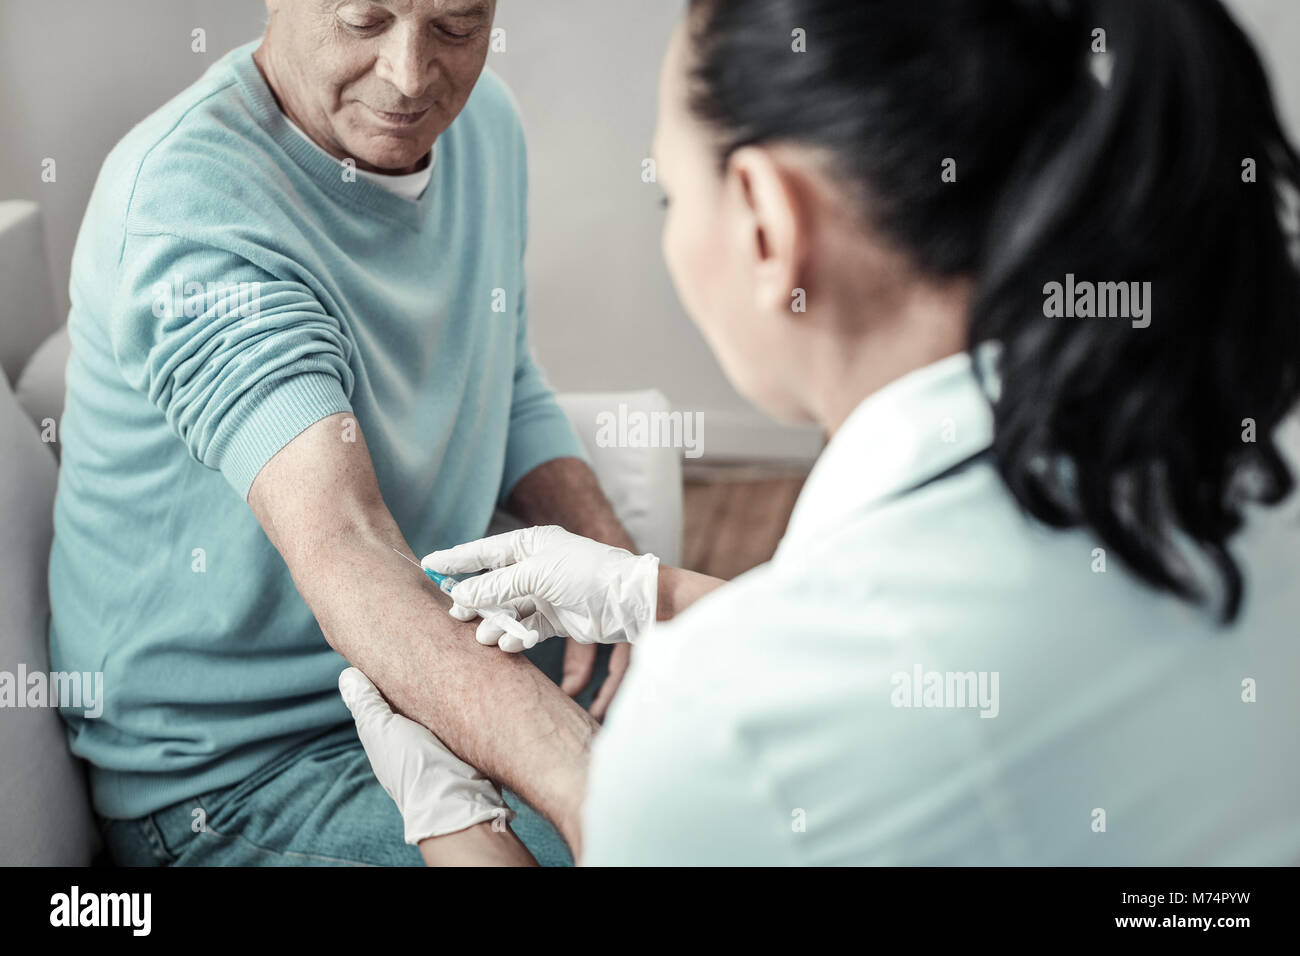 Aged senior patient sitting and having injection. - Stock Image